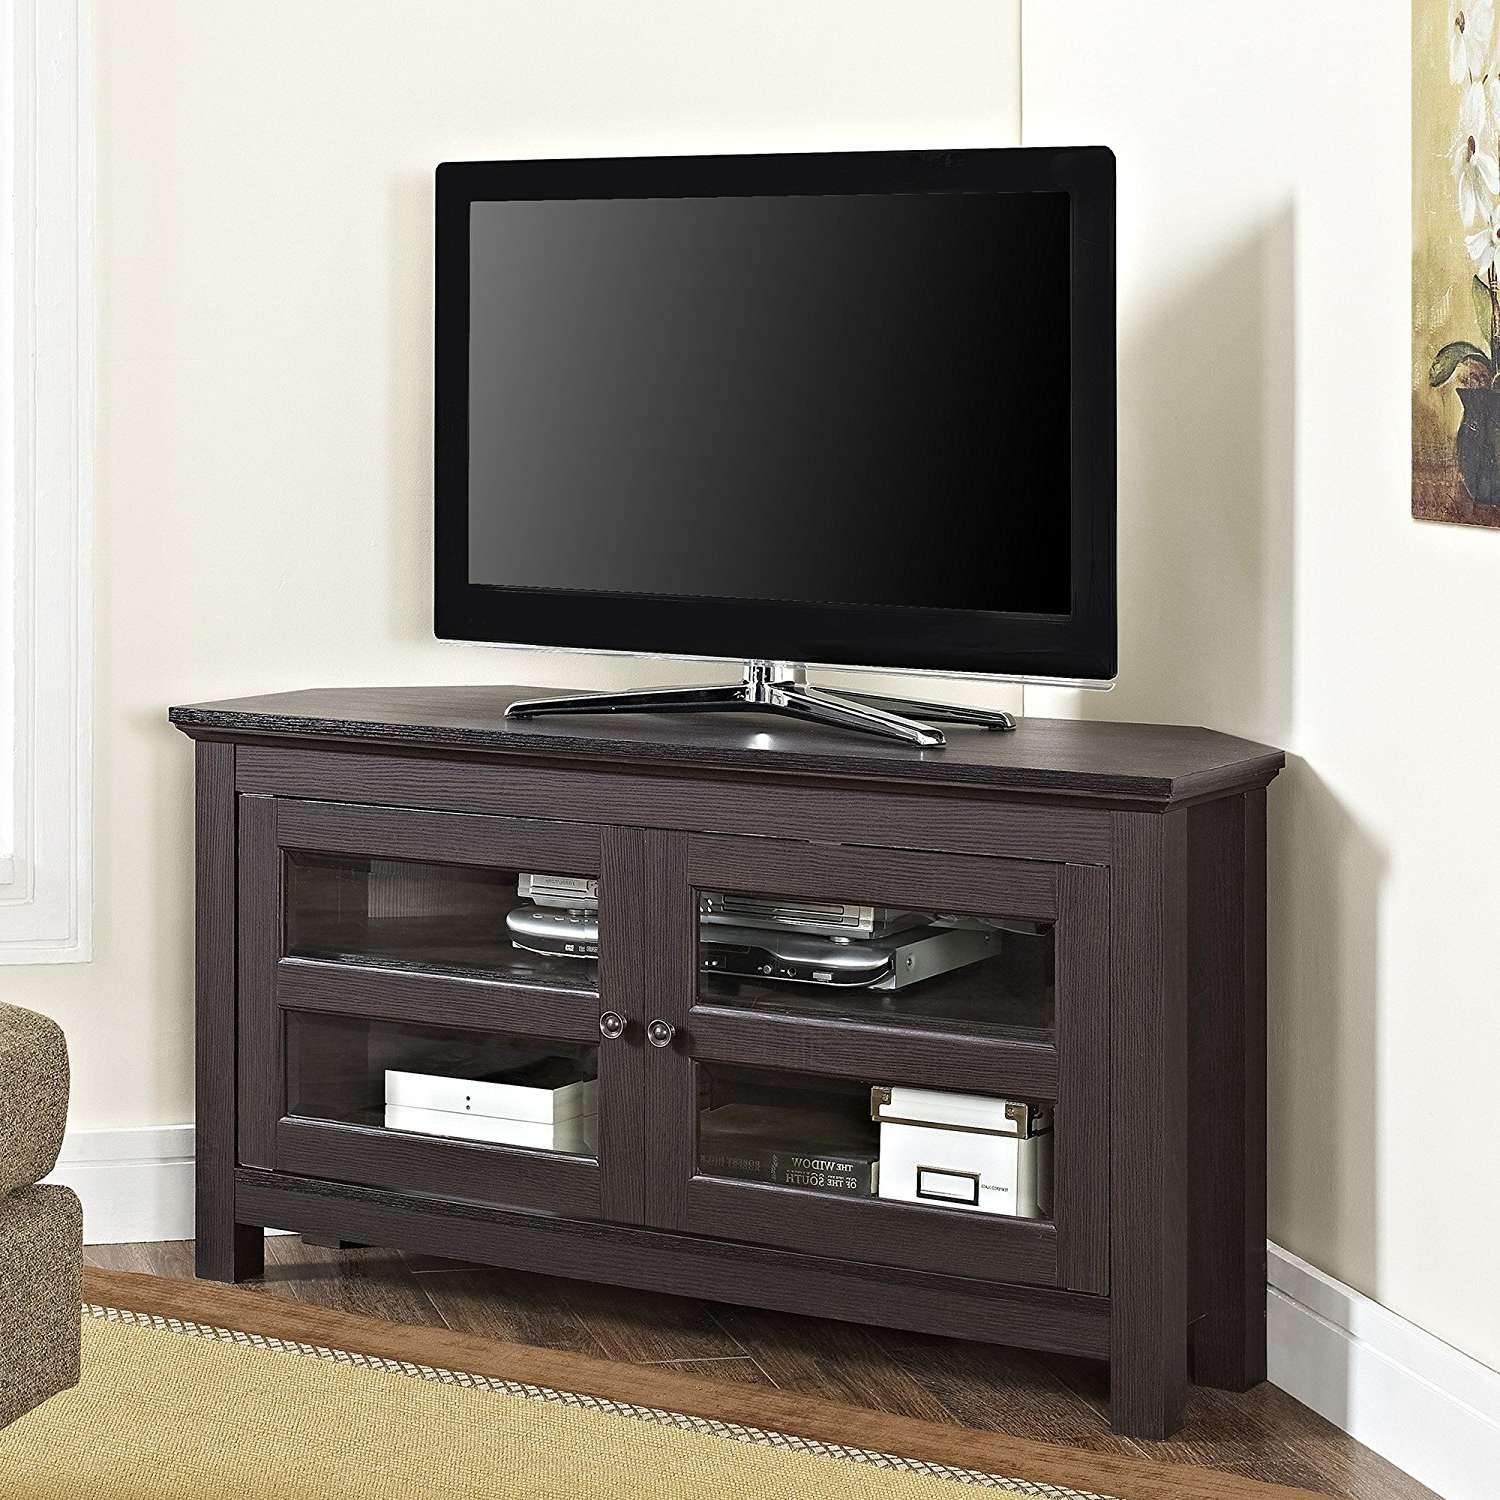 Tv : Suitable Dual Tv Stand Back To Back Finest Dual Tv Stand Uk In Dual Tv Stands (View 14 of 15)